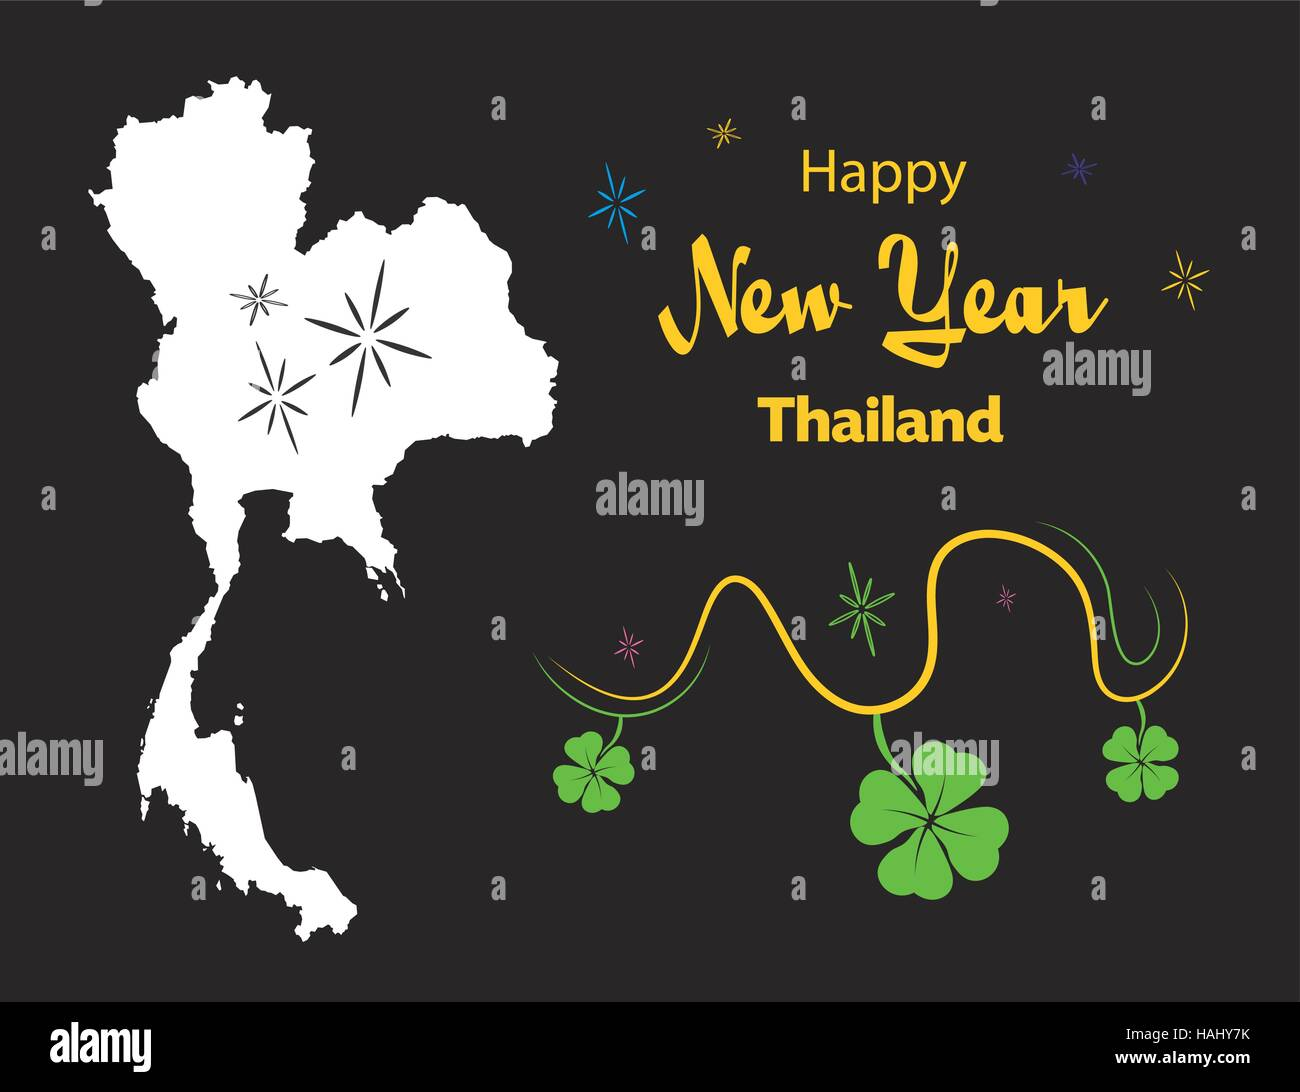 happy new year illustration theme with map of thailand